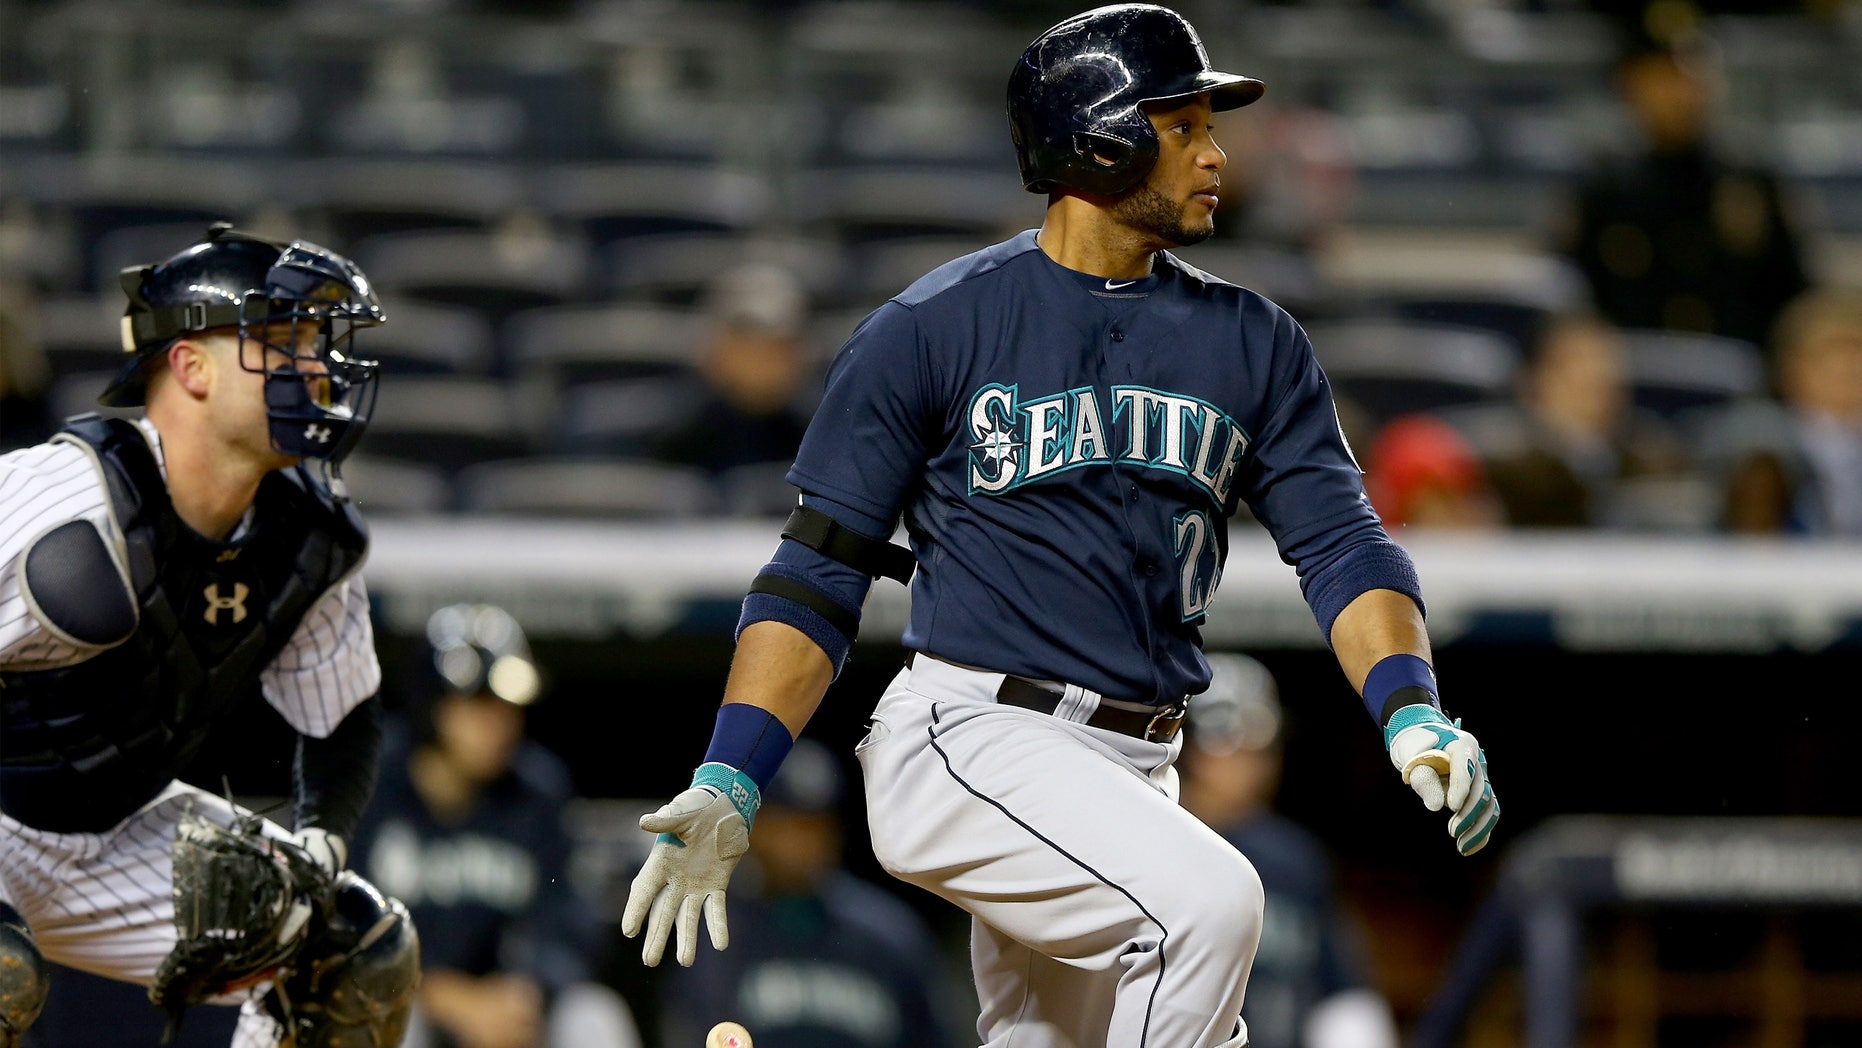 NEW YORK, NY - APRIL 29:  Robinson Cano #22 of the Seattle Mariners takes a swing in the seventh inning as Brian McCann #34 of the New York Yankees defends on April 29, 2014 at Yankee Stadium in the Bronx borough of New York City.  (Photo by Elsa/Getty Images)